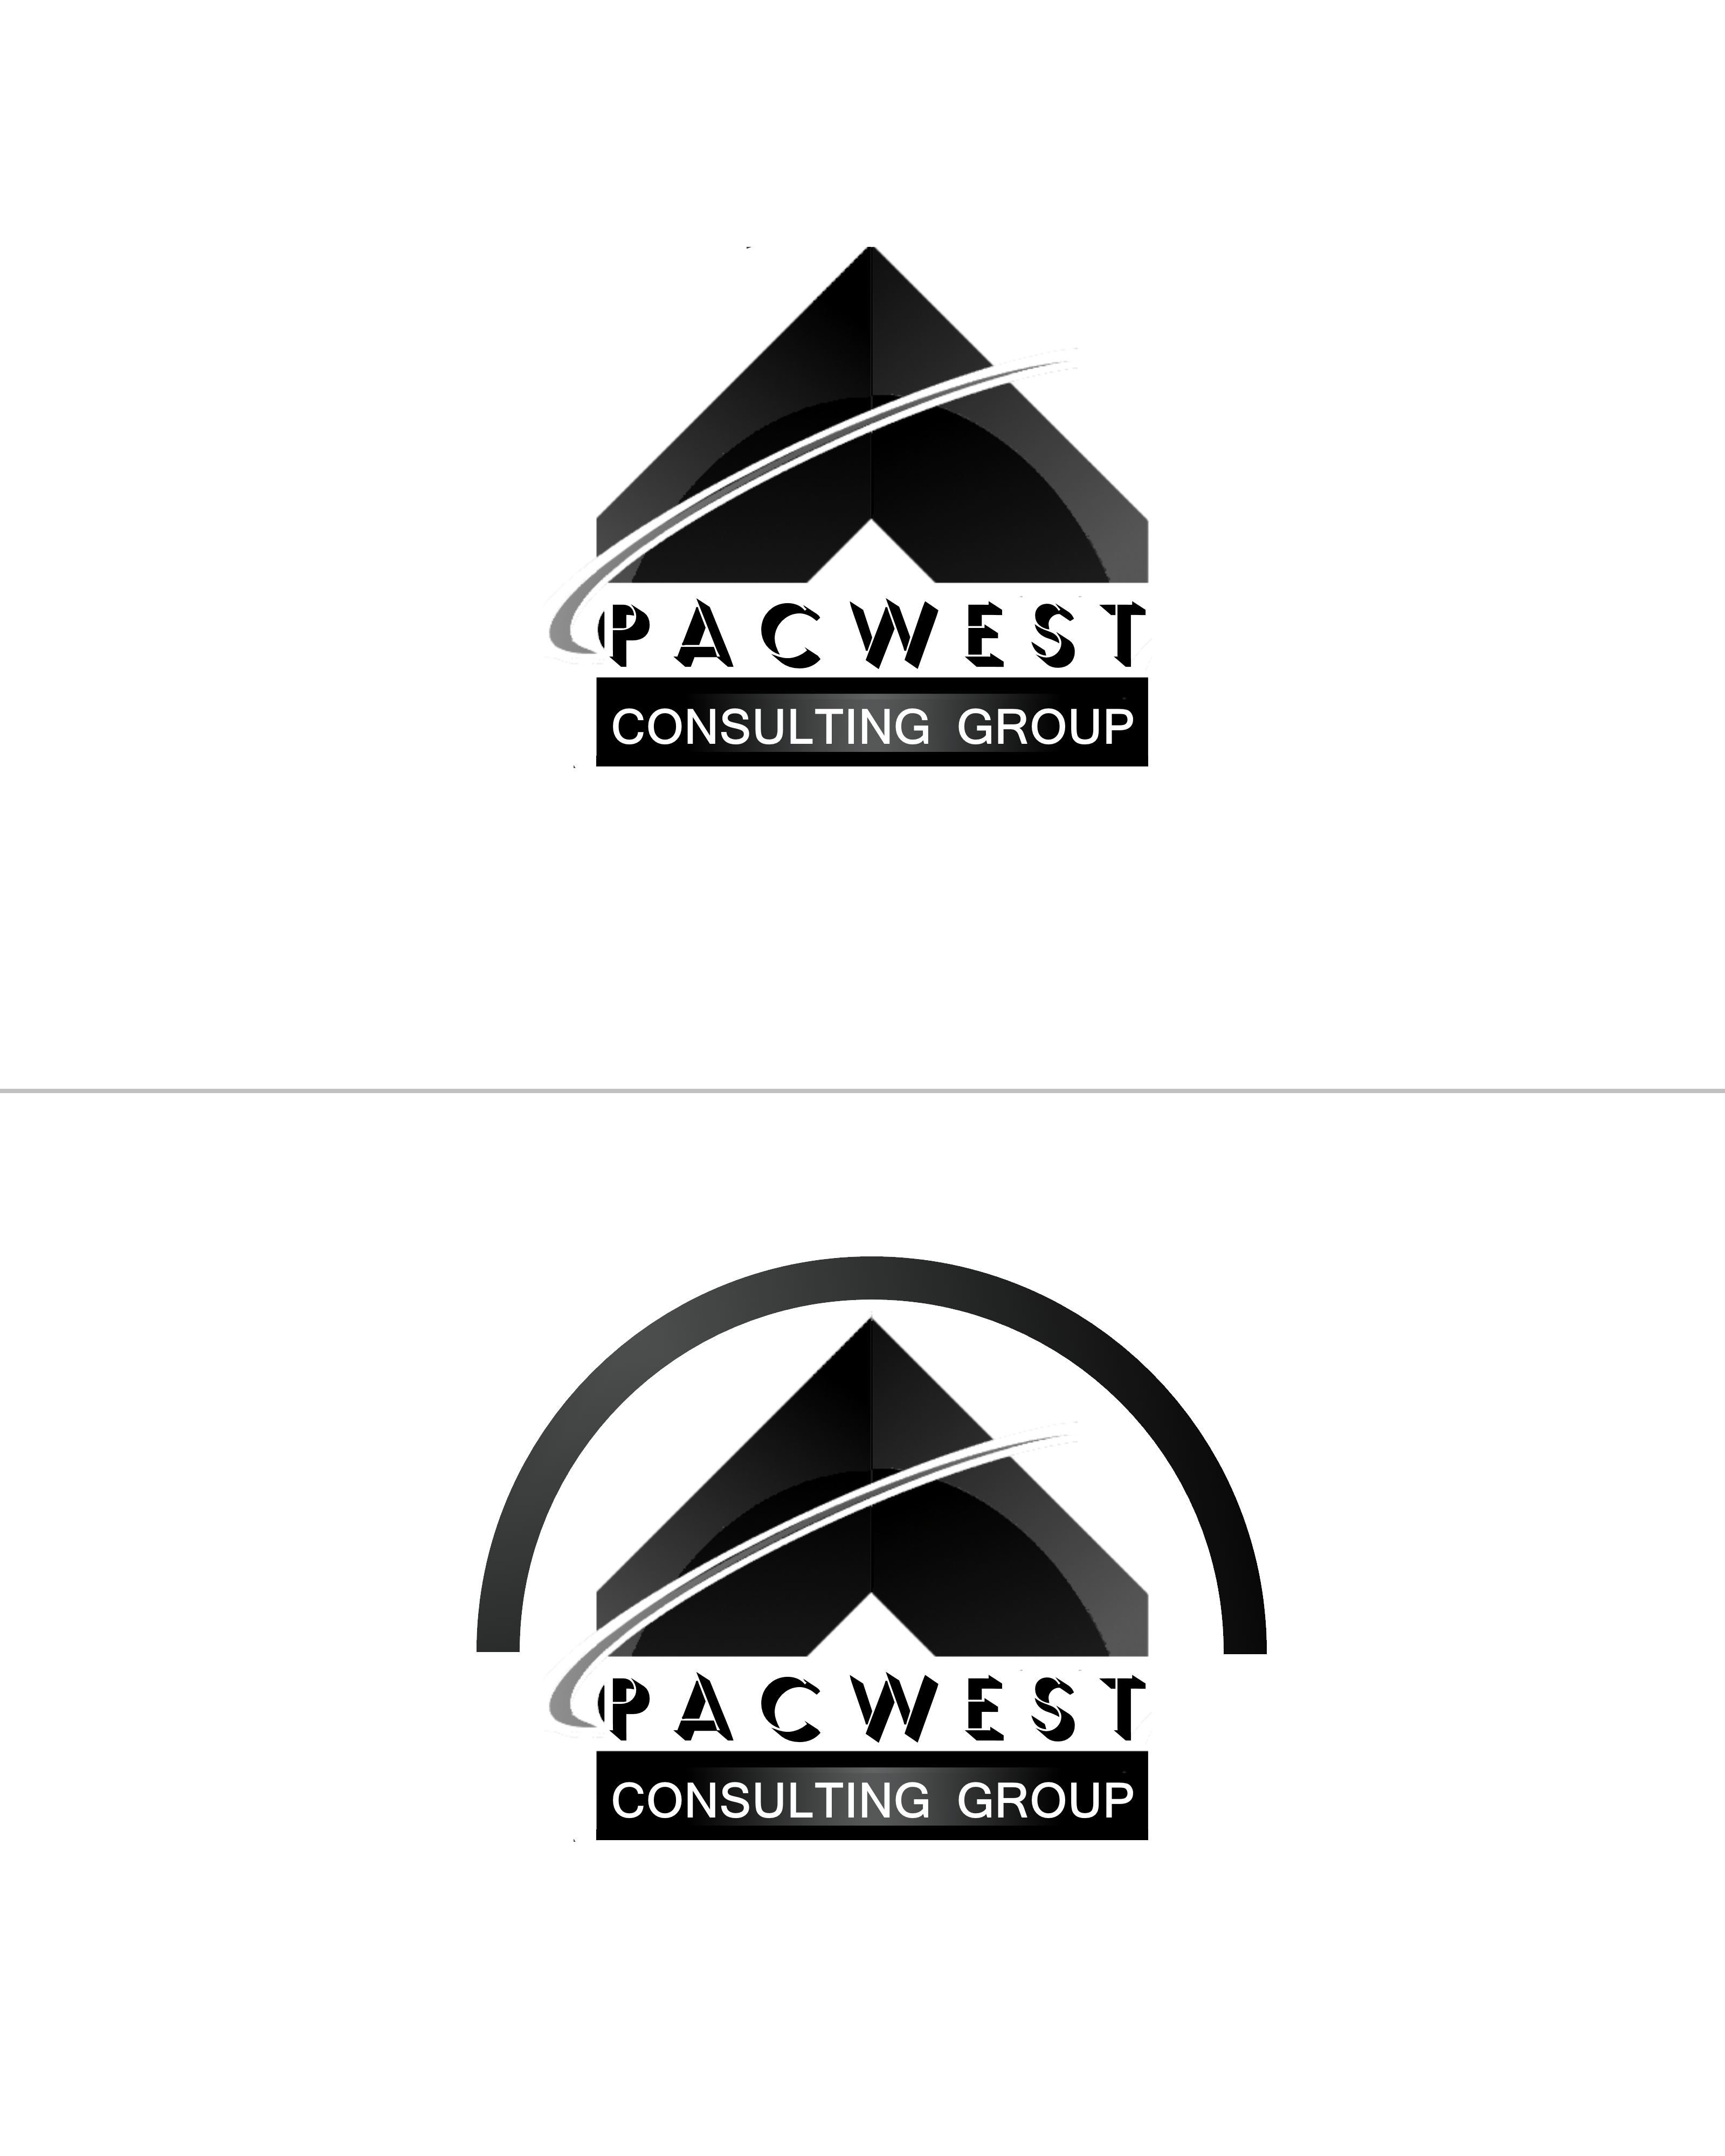 Logo Design by Roberto Bassi - Entry No. 57 in the Logo Design Contest Imaginative Logo Design for Pacwest Consulting Group.